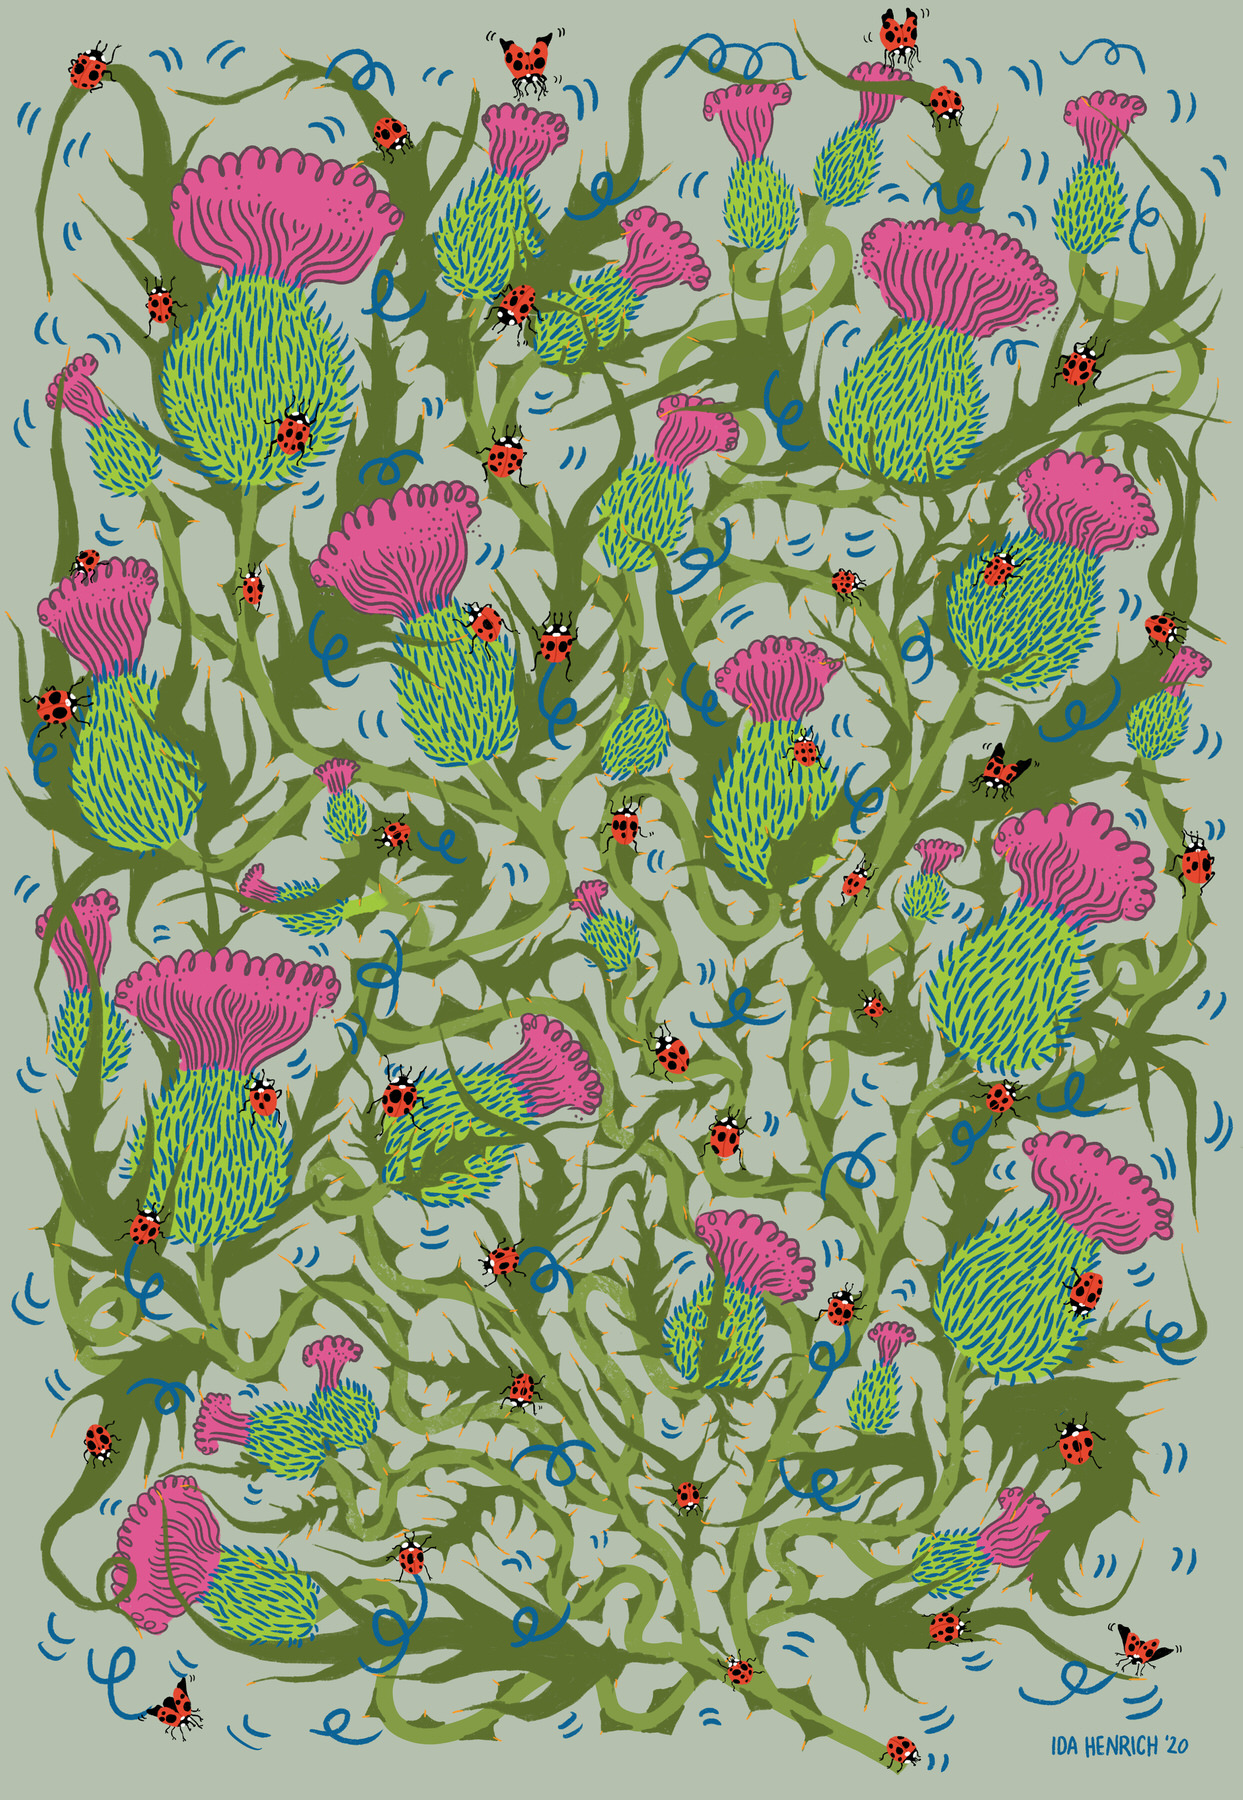 An illustrated pattern of thistles and ladybirds. ©Ida Henrich